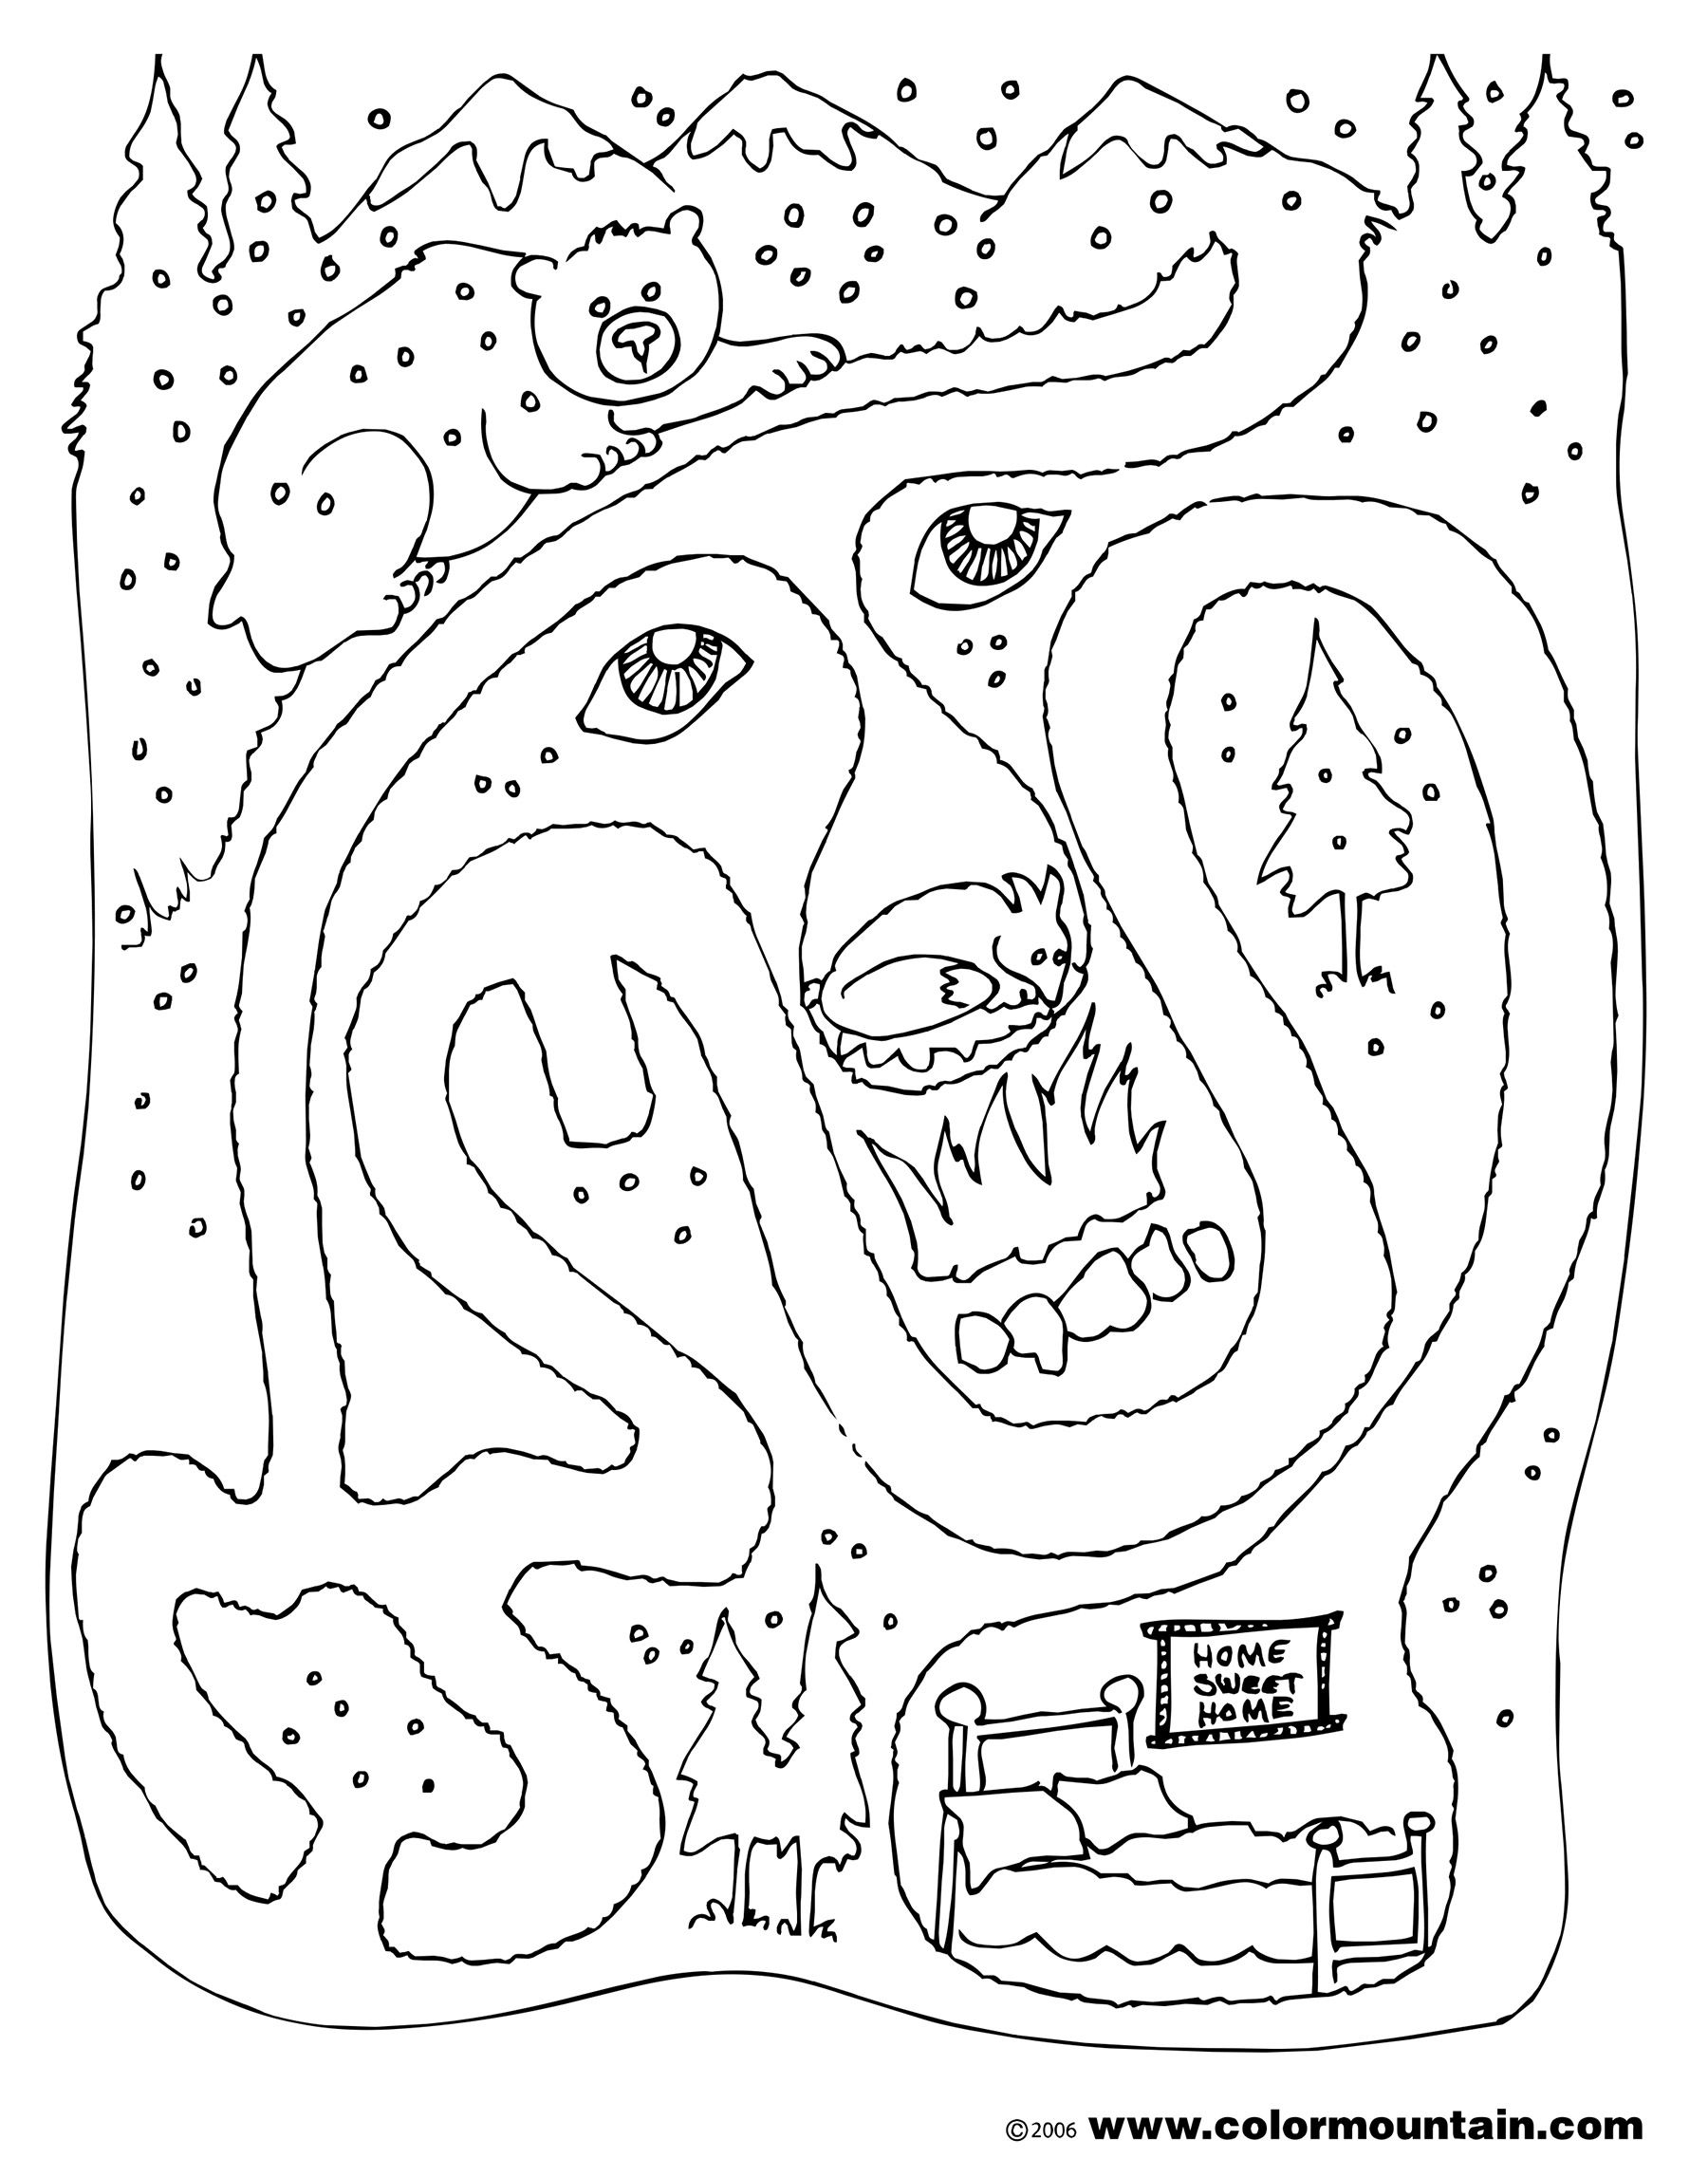 Coloring Pages Hibernating Animals Coloring Pages Breadedcat